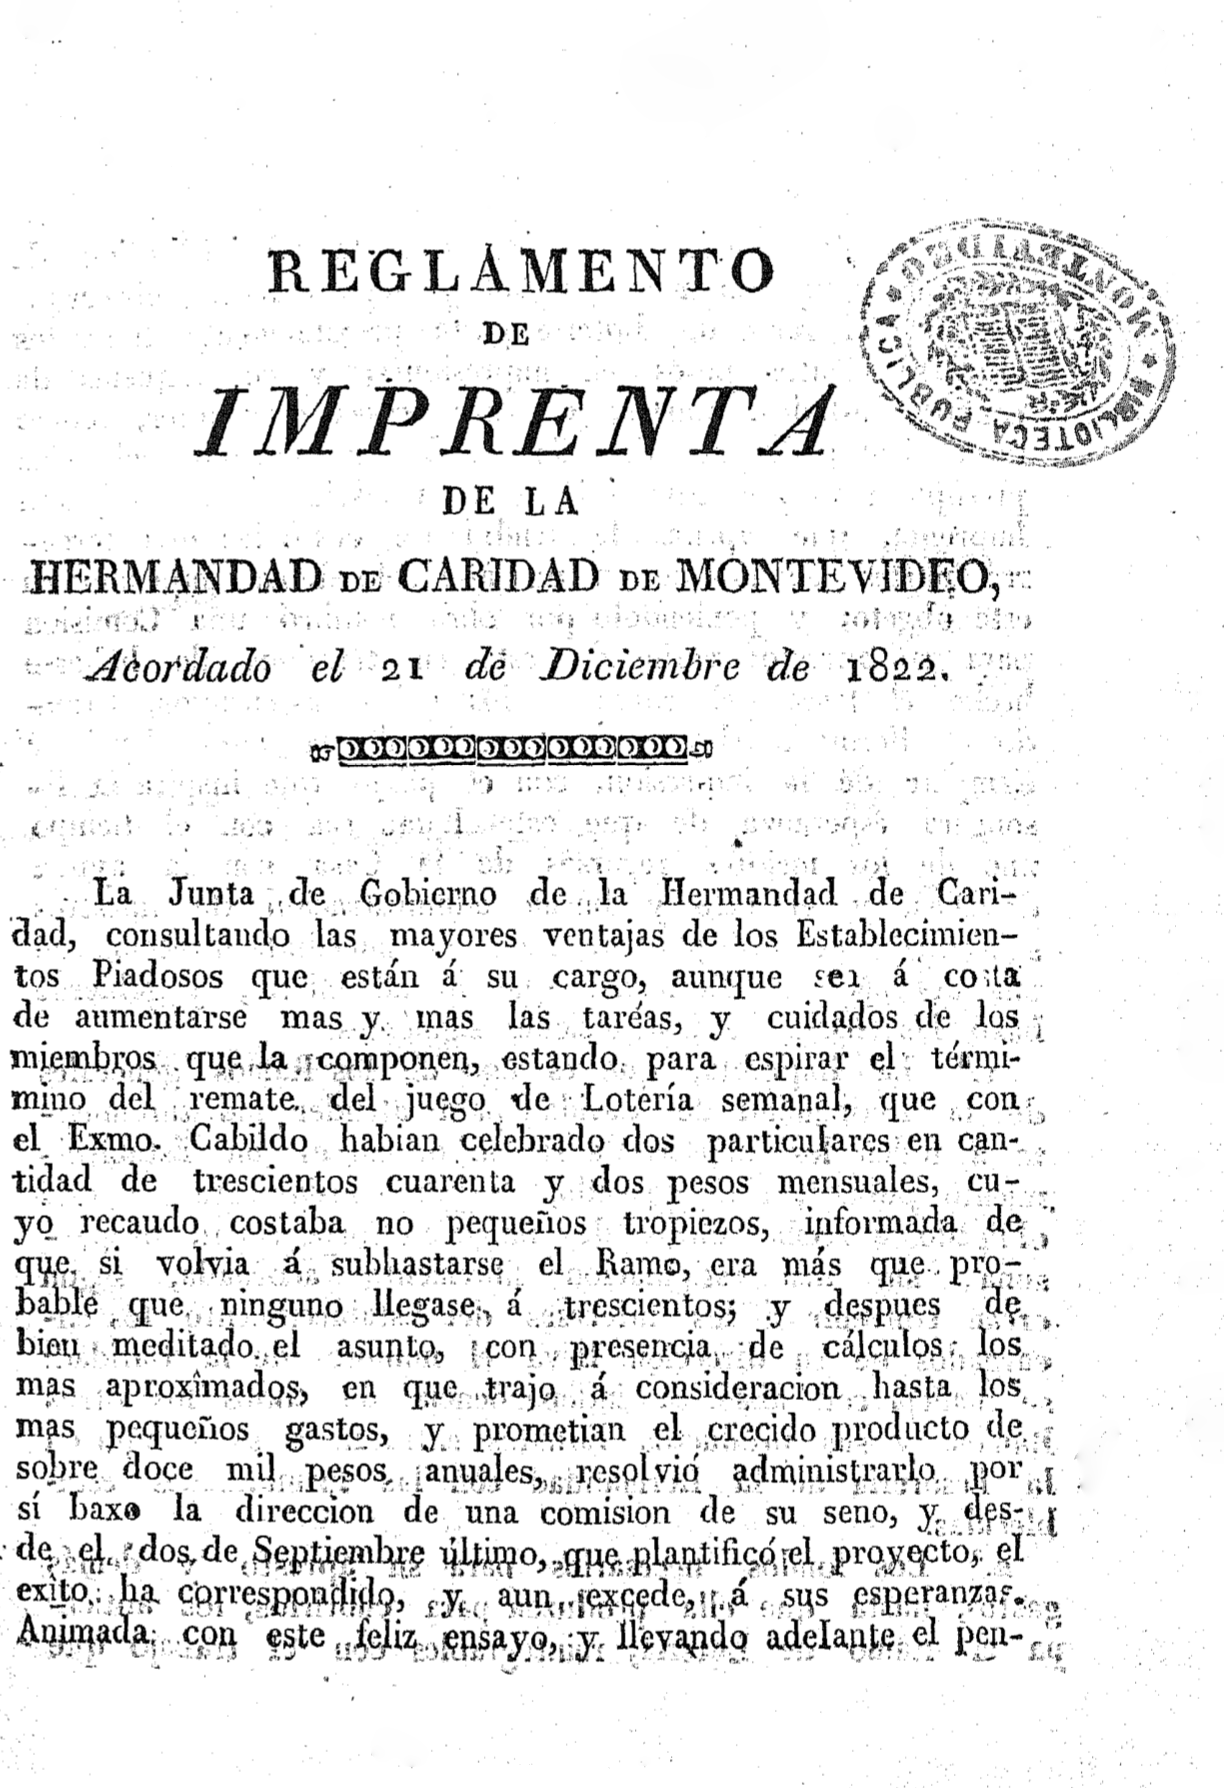 5. Regulation of La Imprenta de la Caridad de Montevideo (1826)